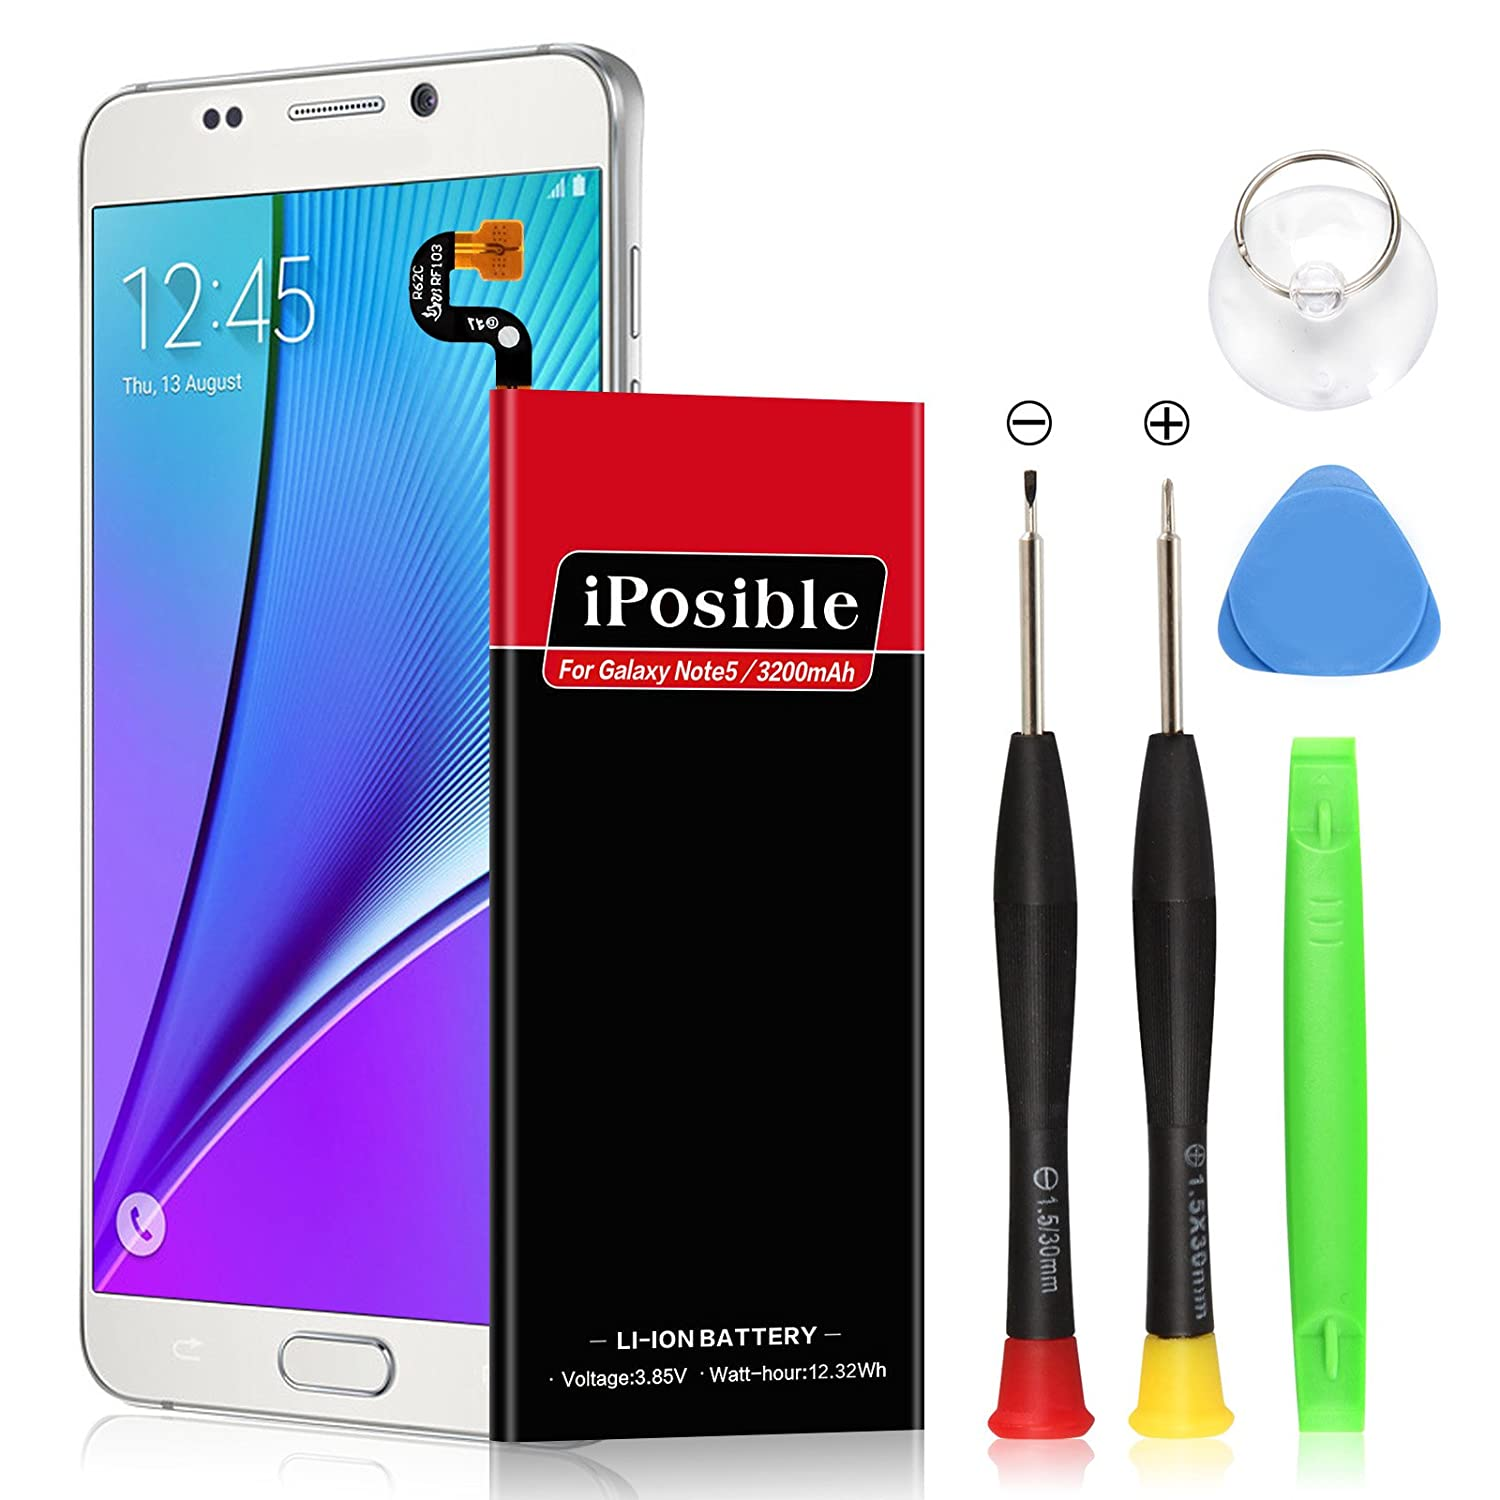 Note 5 Battery Upgraded iPosible 3200mAh Li-Polymer Battery Replacement Samsung Galaxy Note 5 SM-N920 N920V(Verizon) N920A(at&T) N920T(T-Mobile) N920P(Sprint) Removal Tools[24 Month Warranty] note3200mah